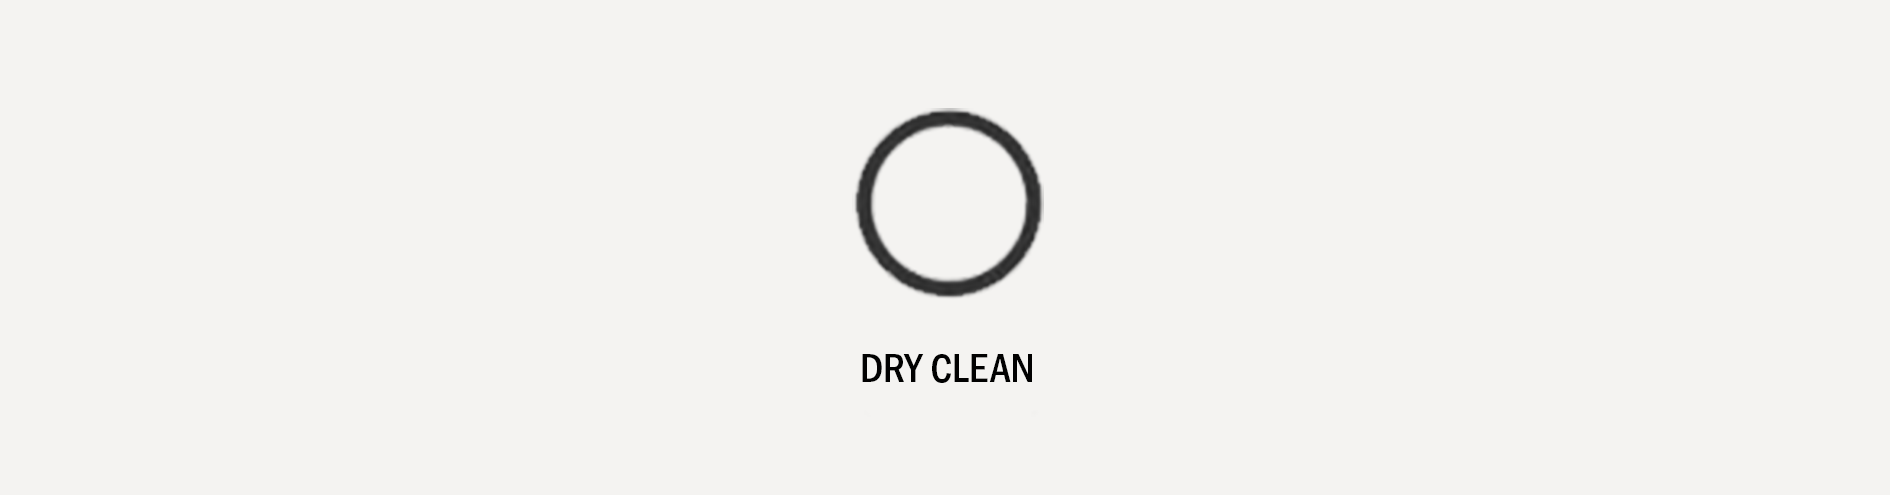 Laundry Care Symbol - Dry Clean